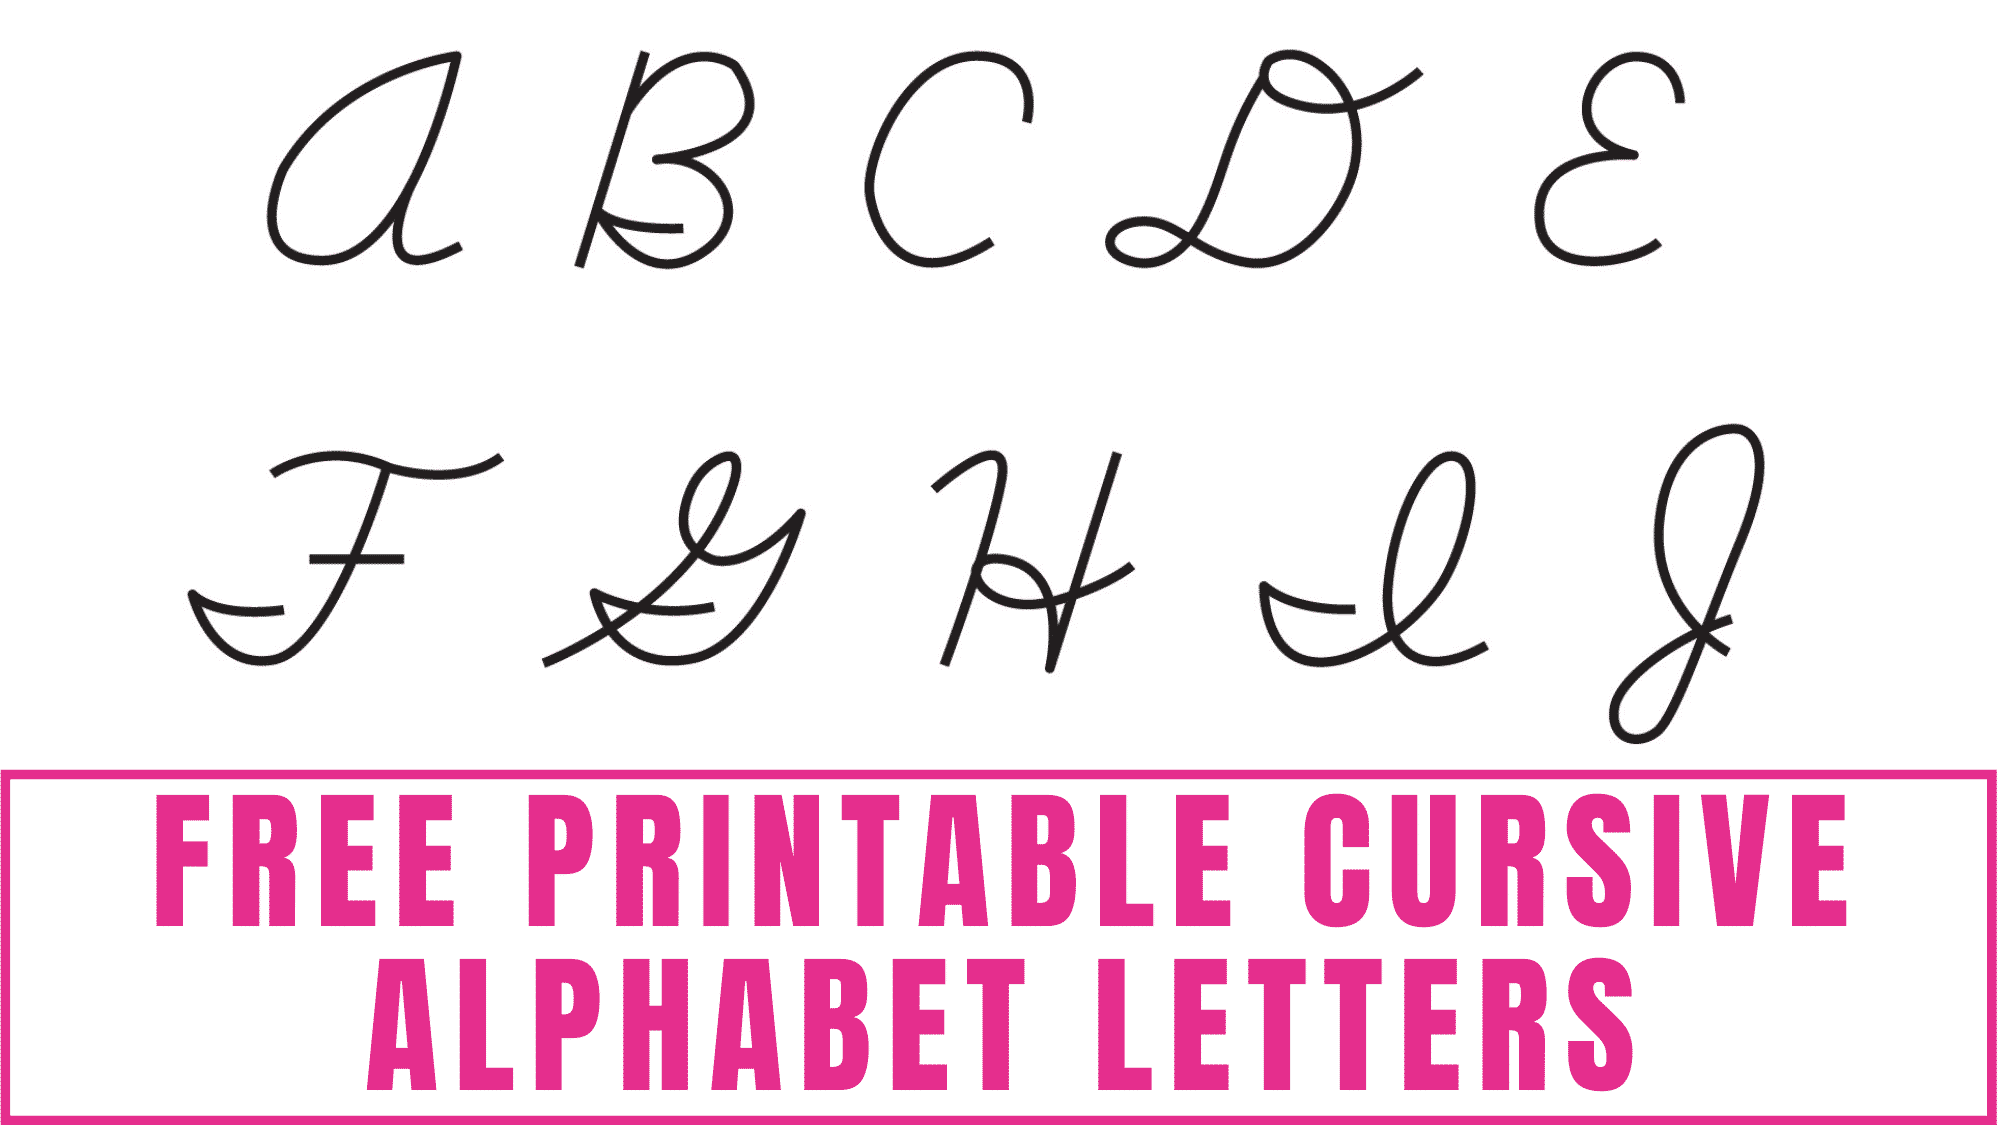 Do you want to help you kid learn how to write cursive letters? Trace these free printable cursive alphabet letters to make learning cursive easy.